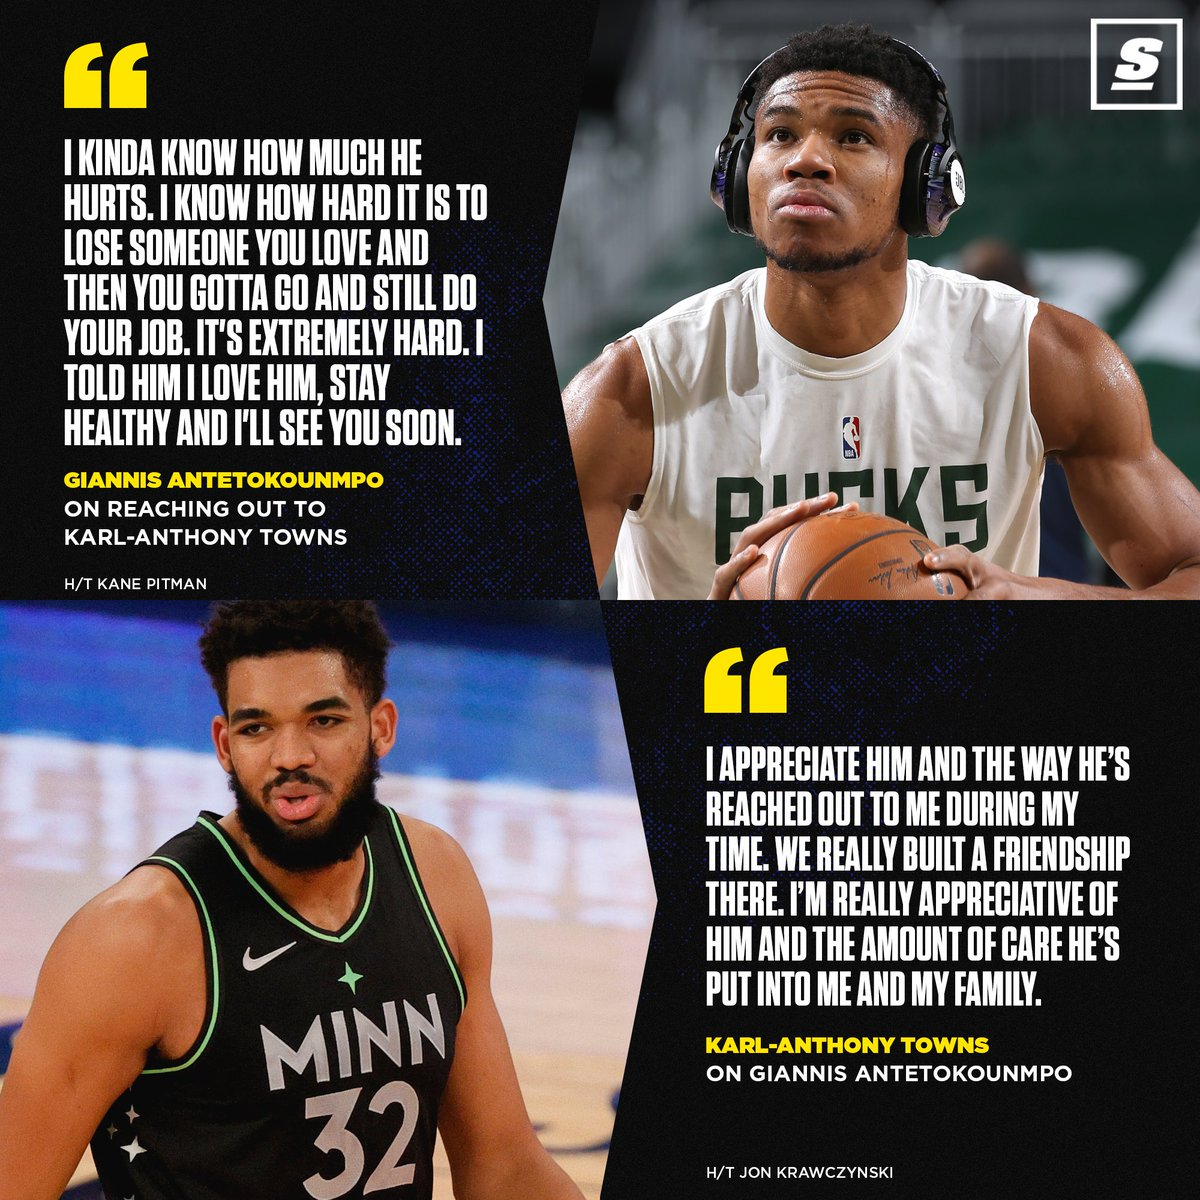 @theScore's photo on Giannis